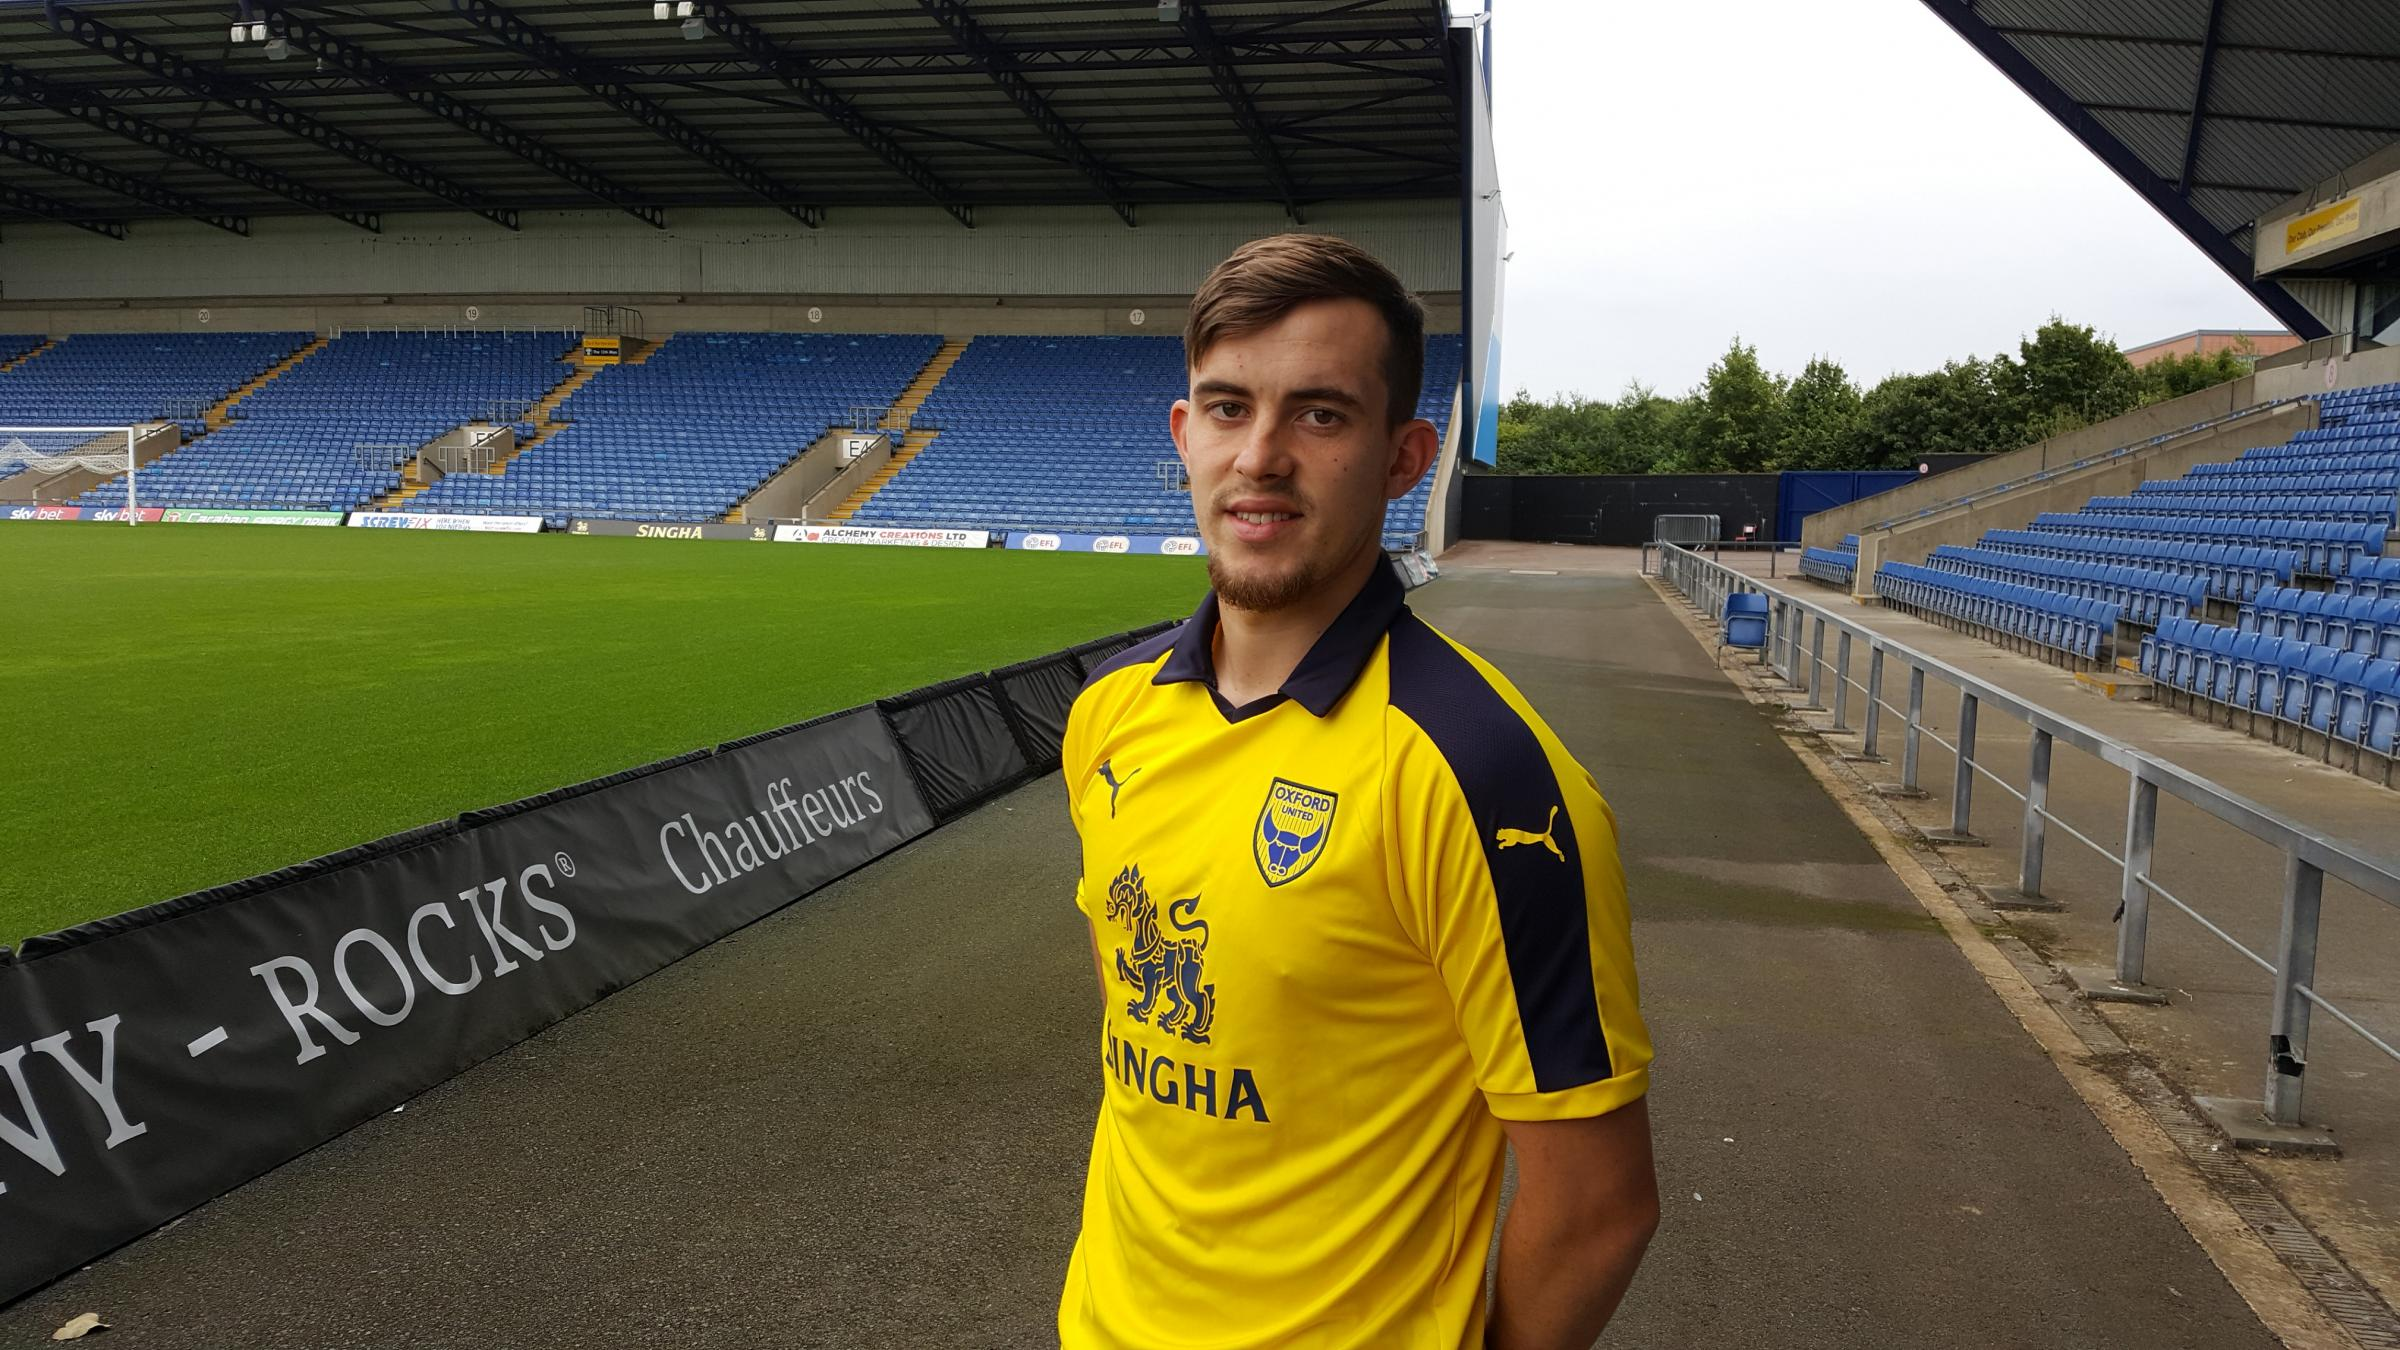 Jamie Hanson was one of three players Oxford United signed on transfer deadline day last August